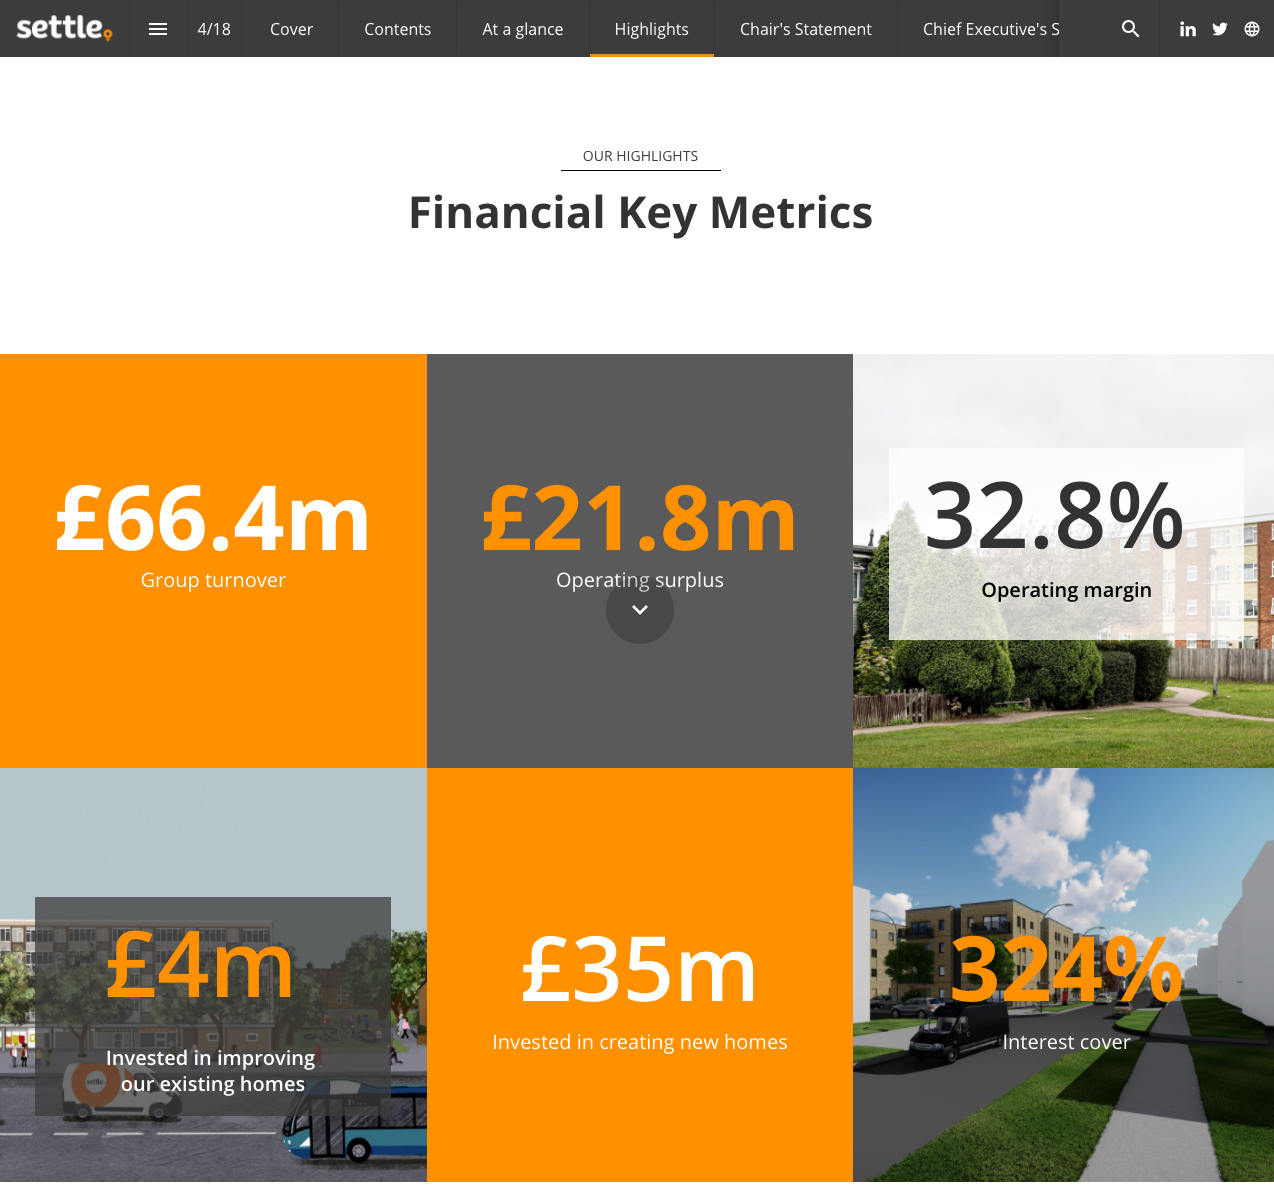 settle annual report - key highlights